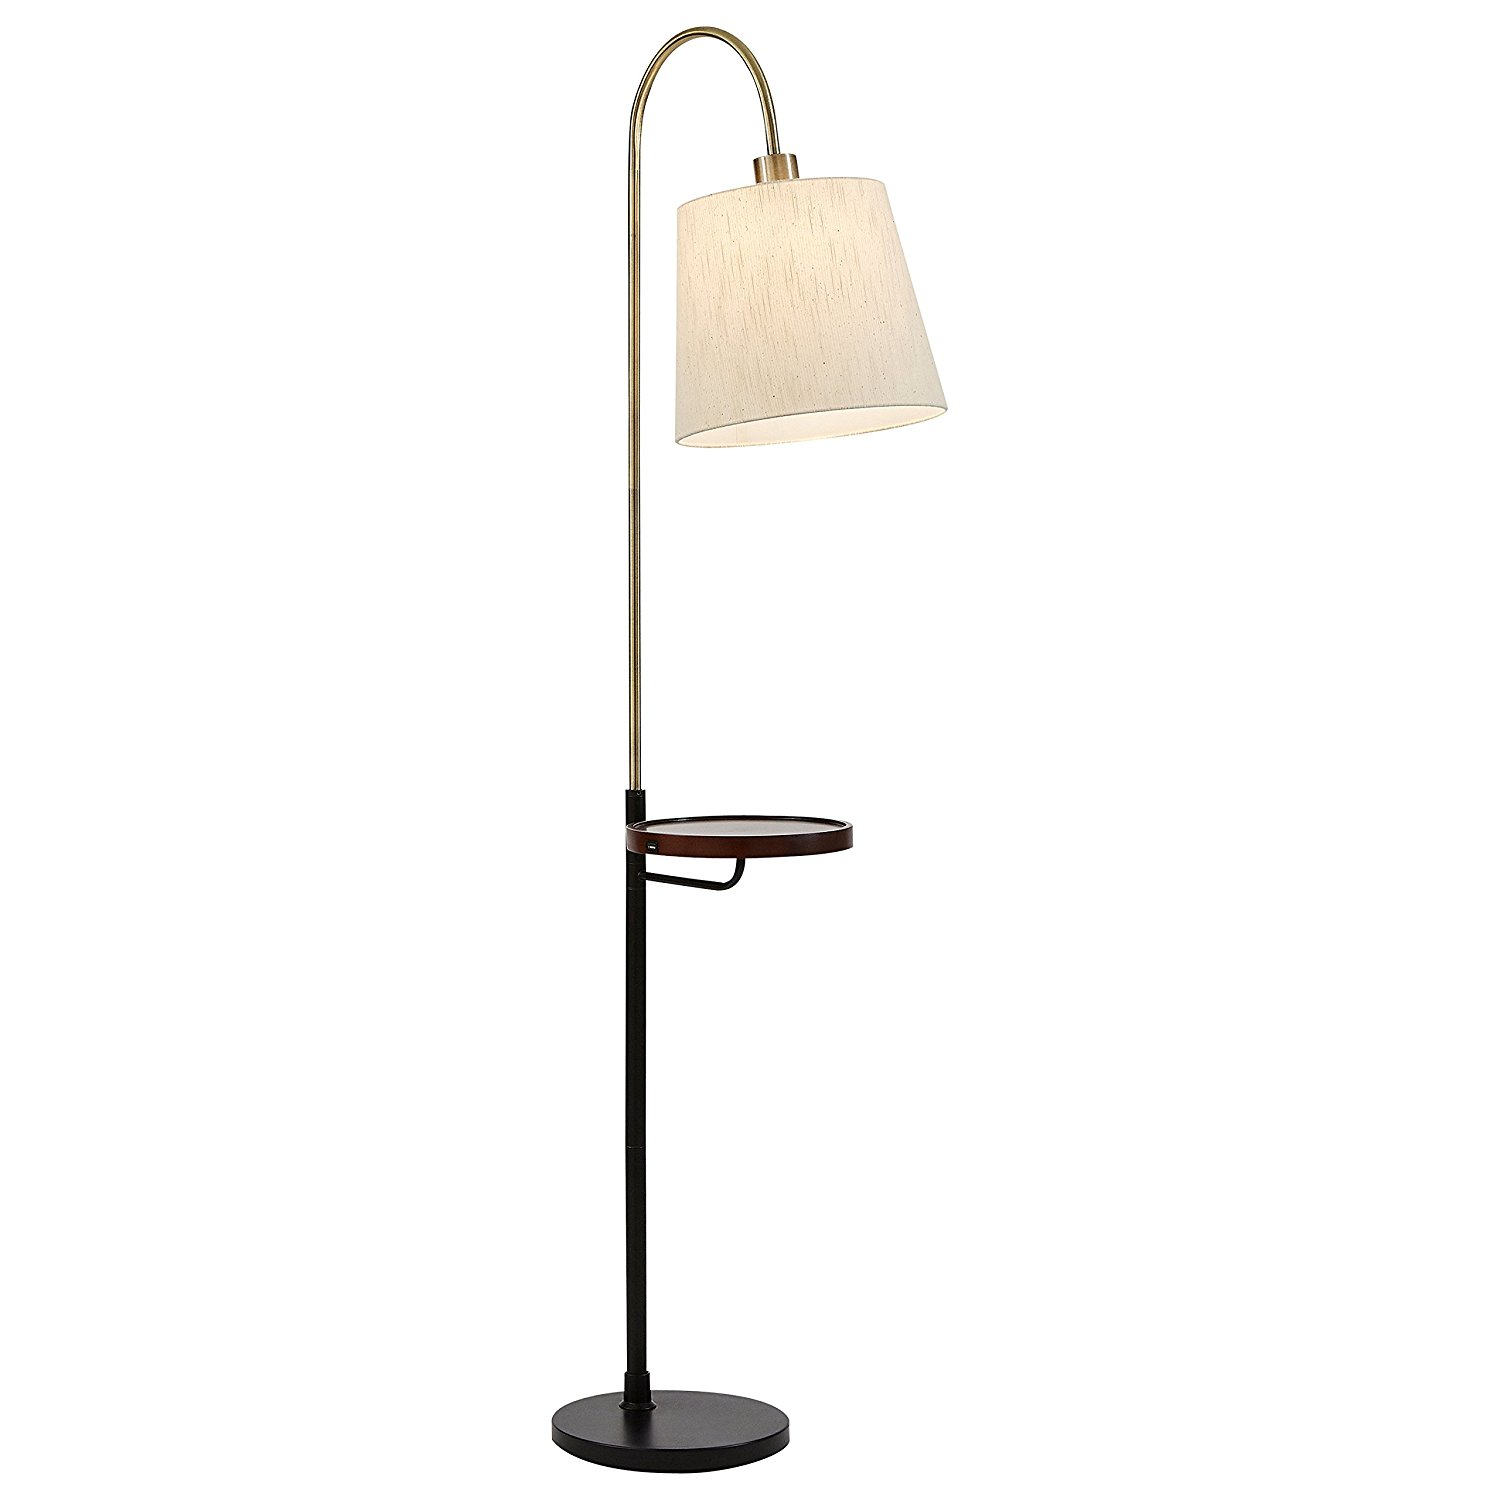 Rivet franklin shelf and usb charging station floor lamp for Amazon floor lamp shelf